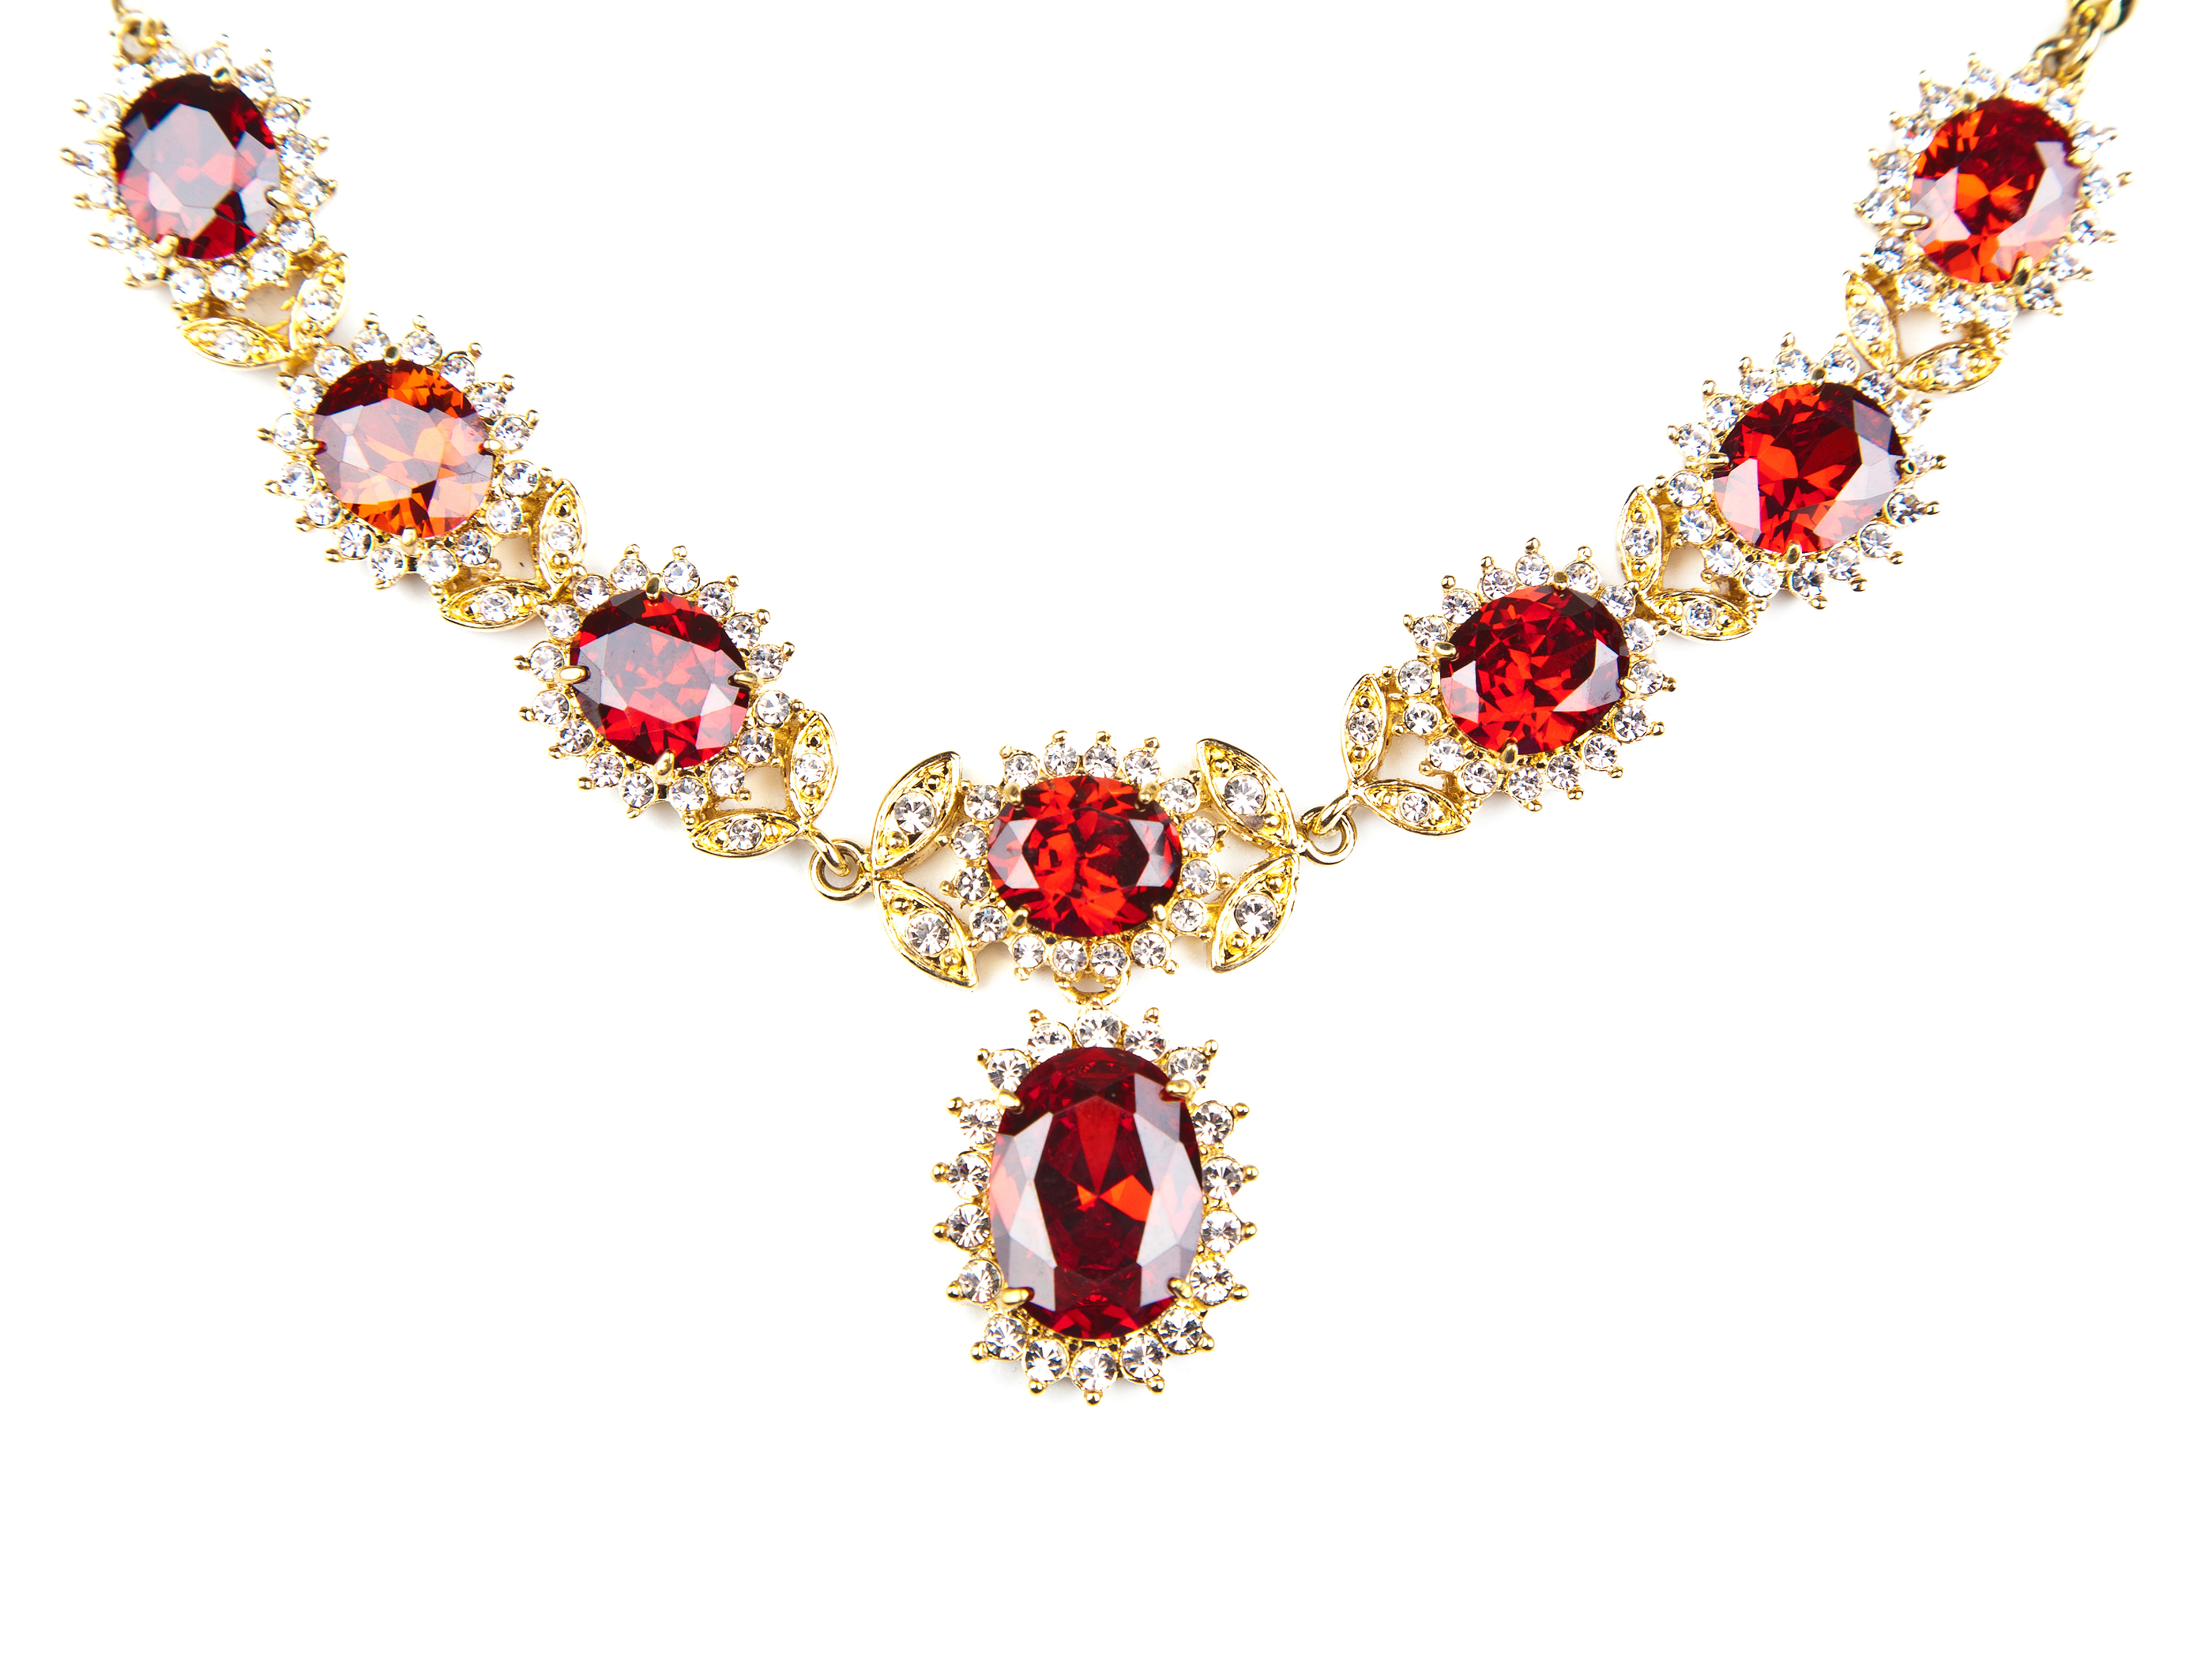 with necklace jewelers gold how advice to blog gems red wear jewelry ruby isolat hannoush ct bigstock